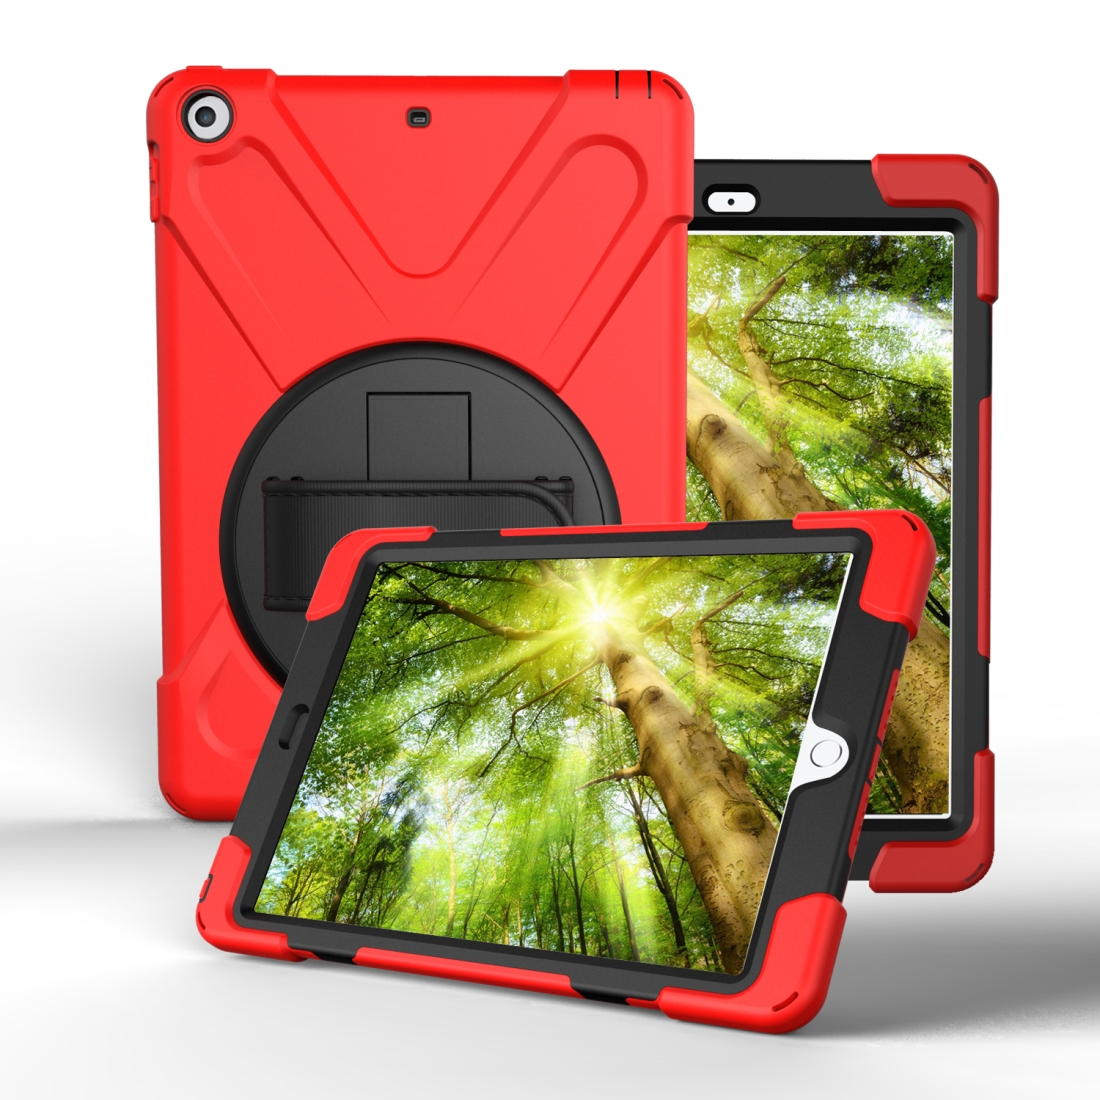 iPad 7th Generation Case (10.2 Inch) With A Protective Rotatable Design And Hand Strap (Red)